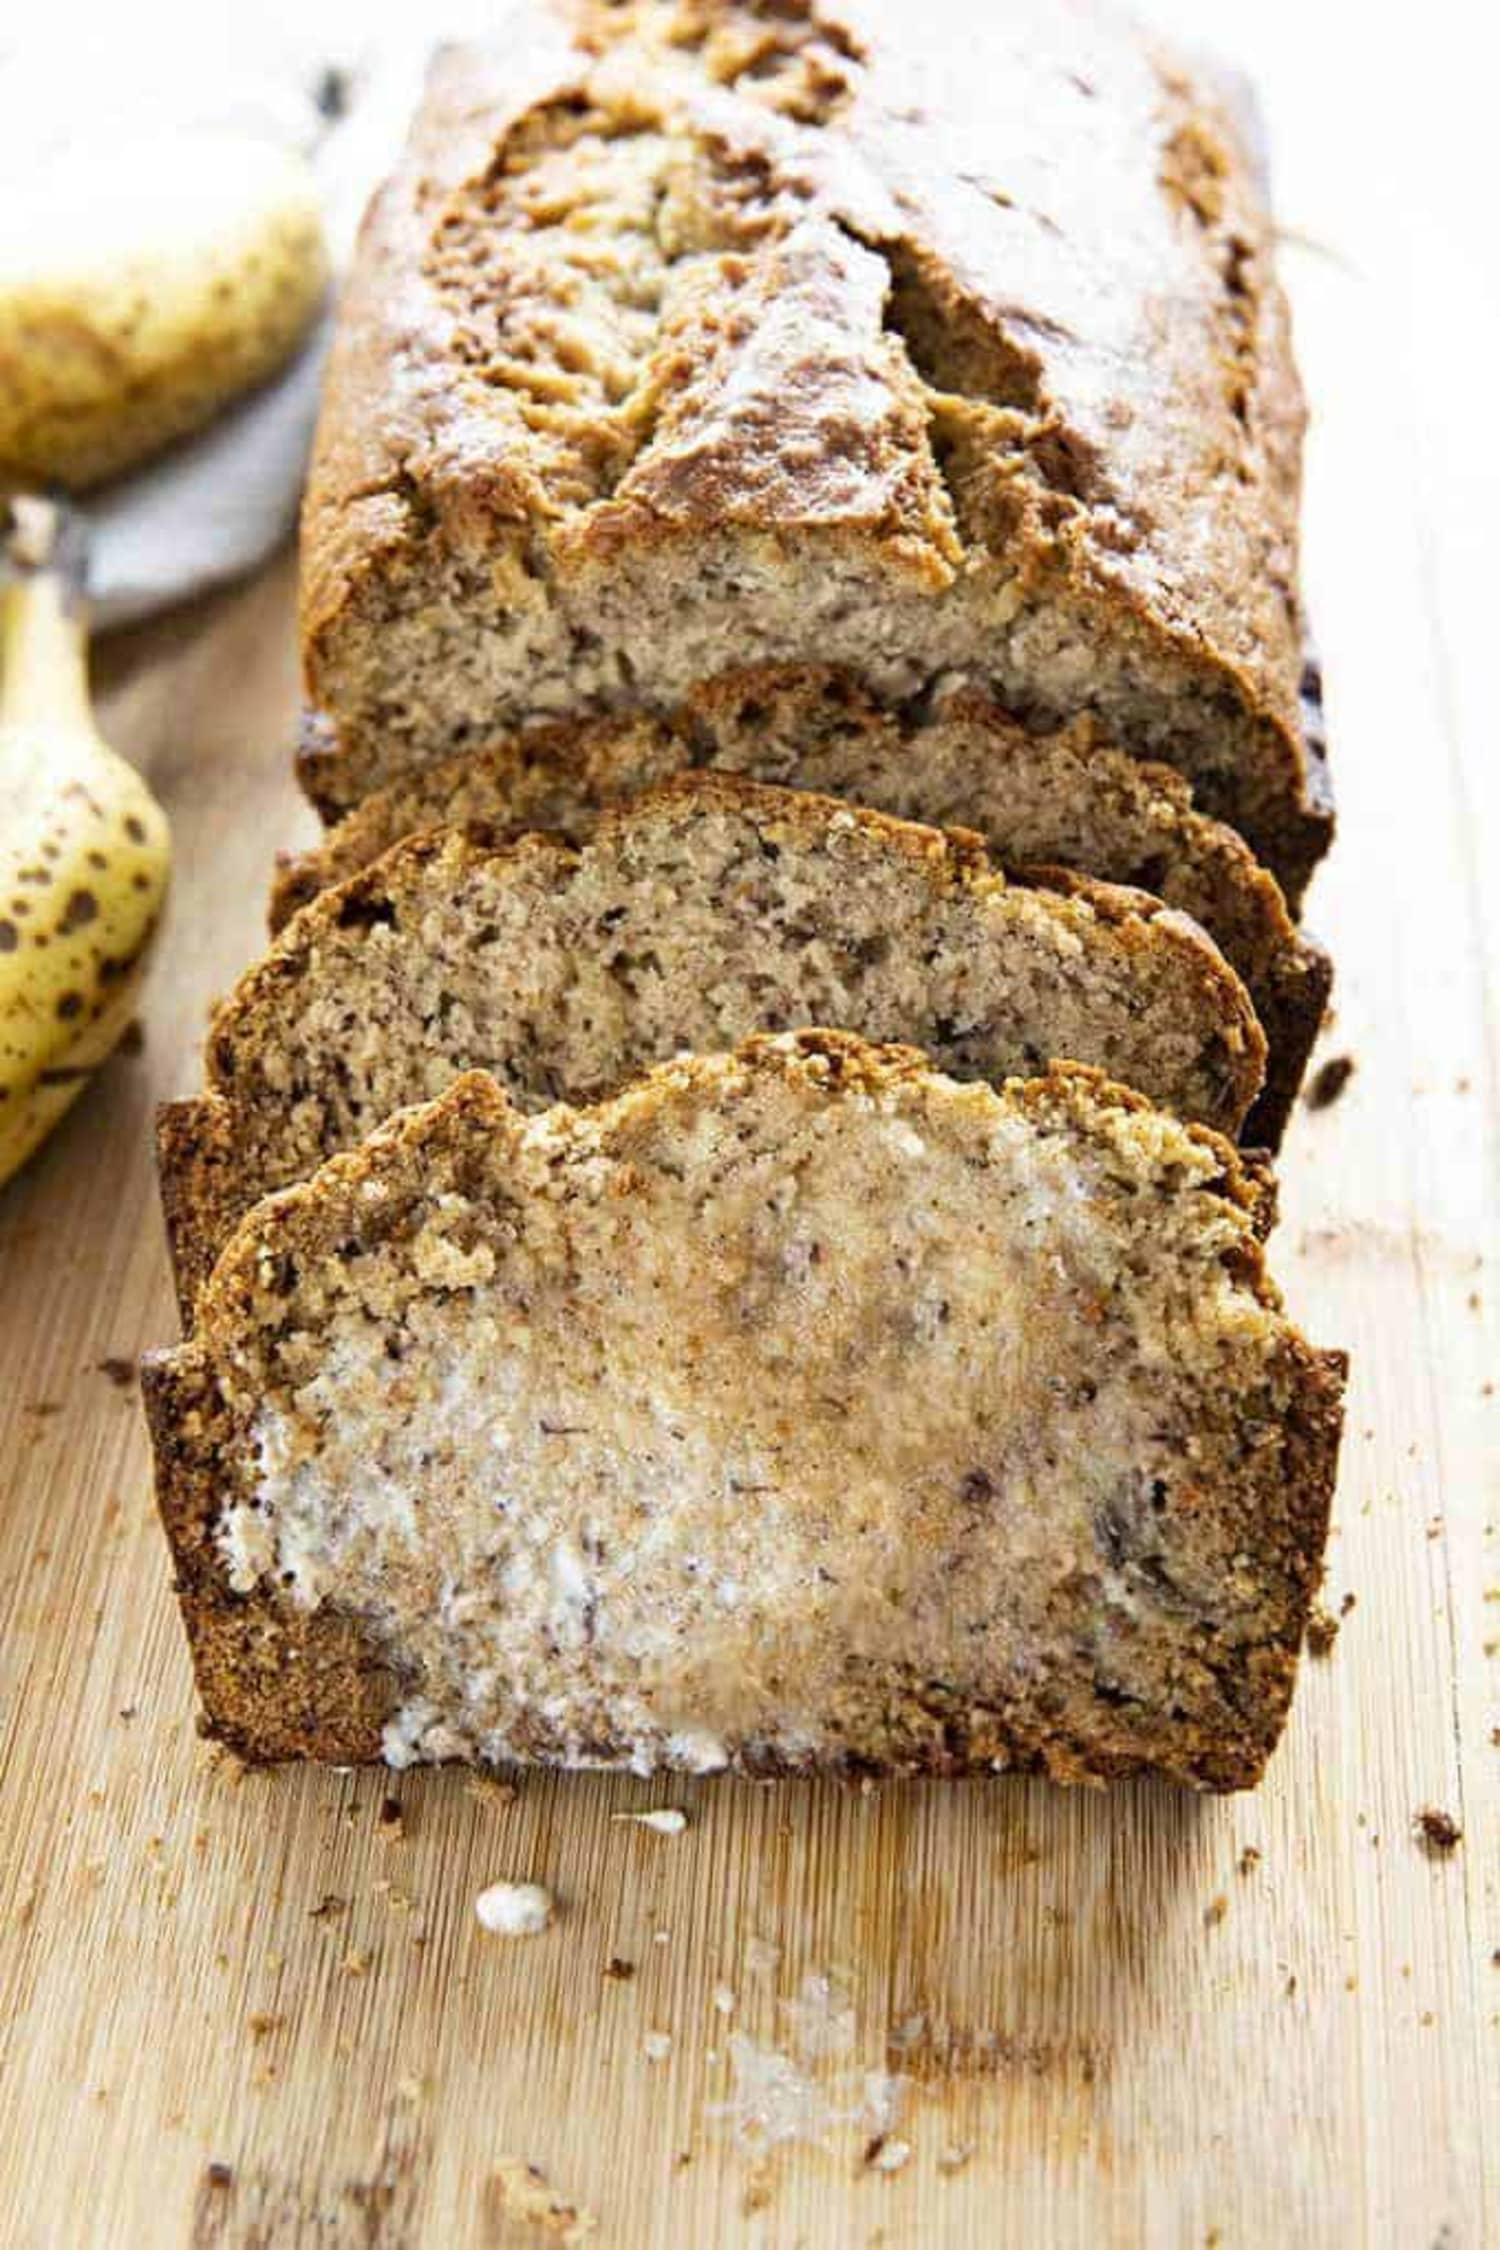 The Top 5 Banana Bread Recipes on Pinterest Right Now